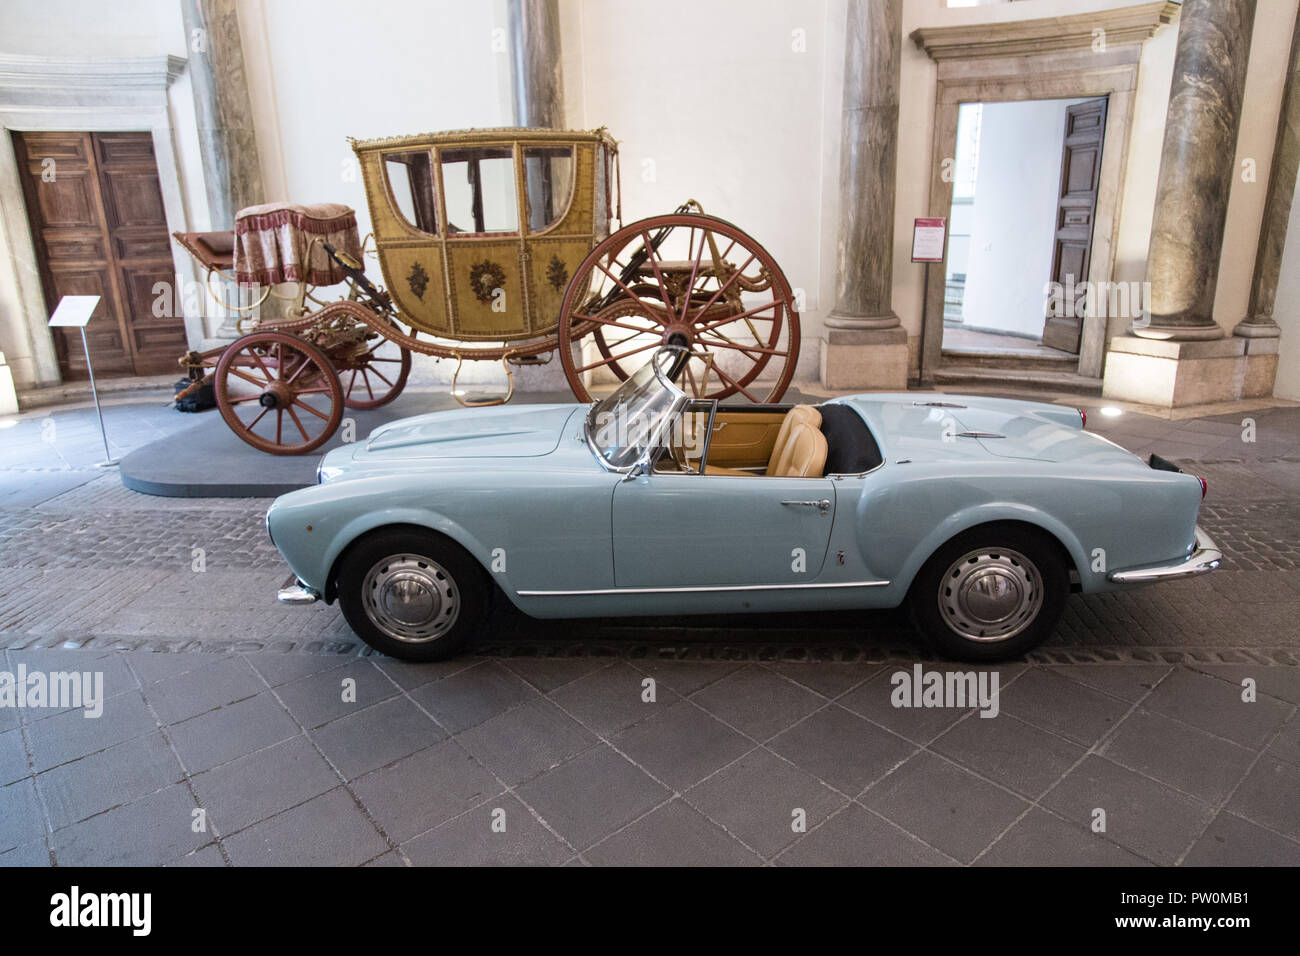 "Roma, Italy. 11th Oct, 2018. Lancia Aurelia B24 convertible, the original spider of the movie ""Il Sorpasso"" Inauguration of the exhibition ""Il sorpasso. Quando l'Italia si mise a correre, 1946-1961"" at the Museum of Rome in Palazzo Braschi Credit: Matteo Nardone/Pacific Press/Alamy Live News Stock Photo"